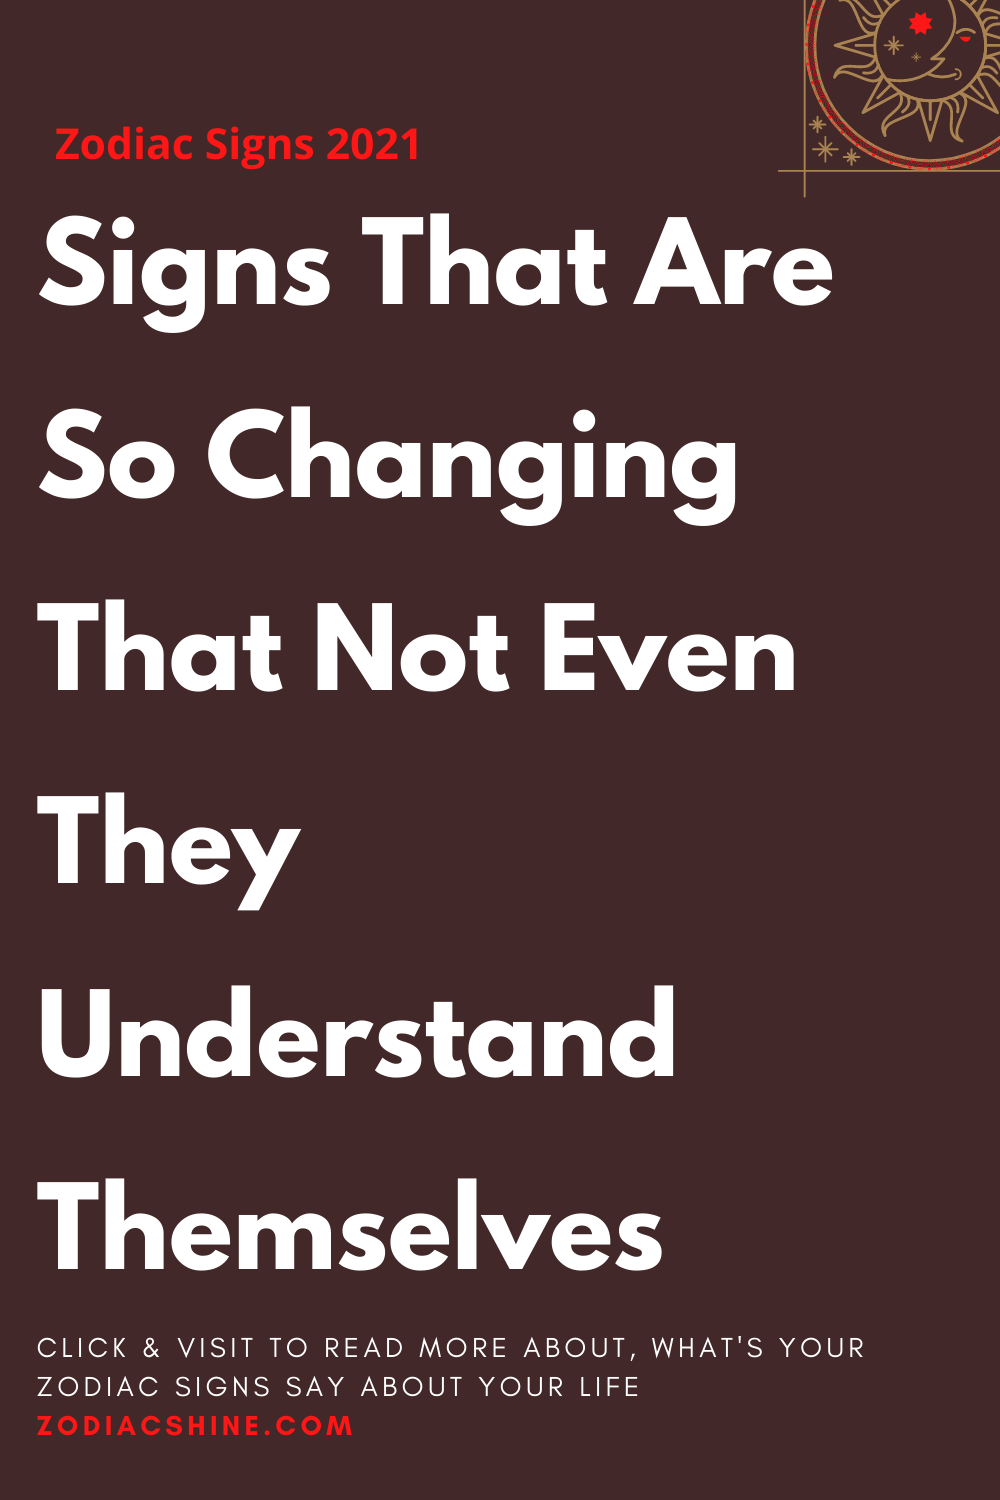 Signs That Are So Changing That Not Even They Understand Themselves